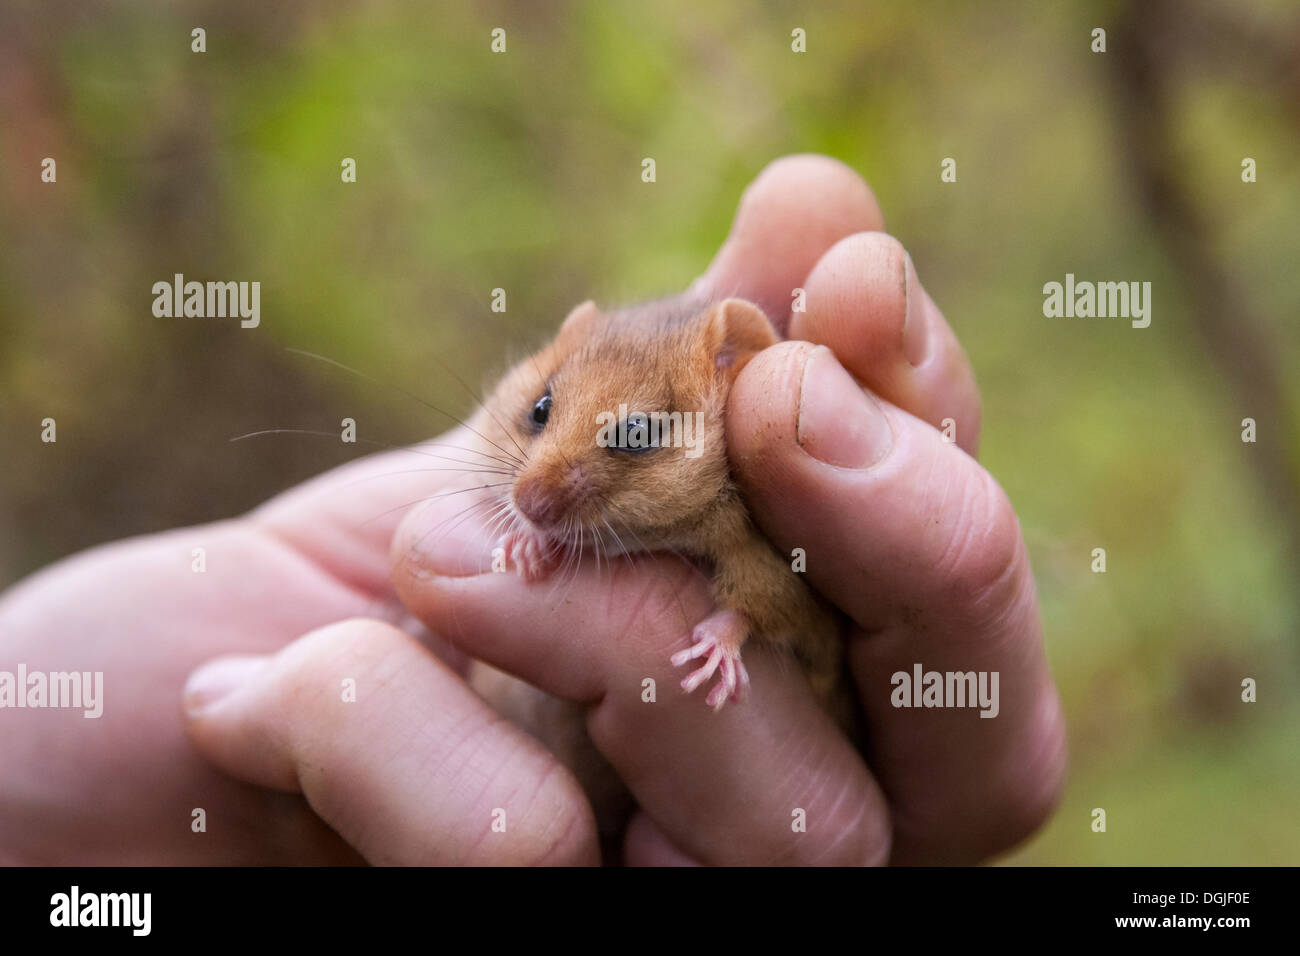 Common Hazel Dormouse (Muscardinus avellanarius) removed from nest box  and held for licenced check, Yorkshire Dales, UK - Stock Image